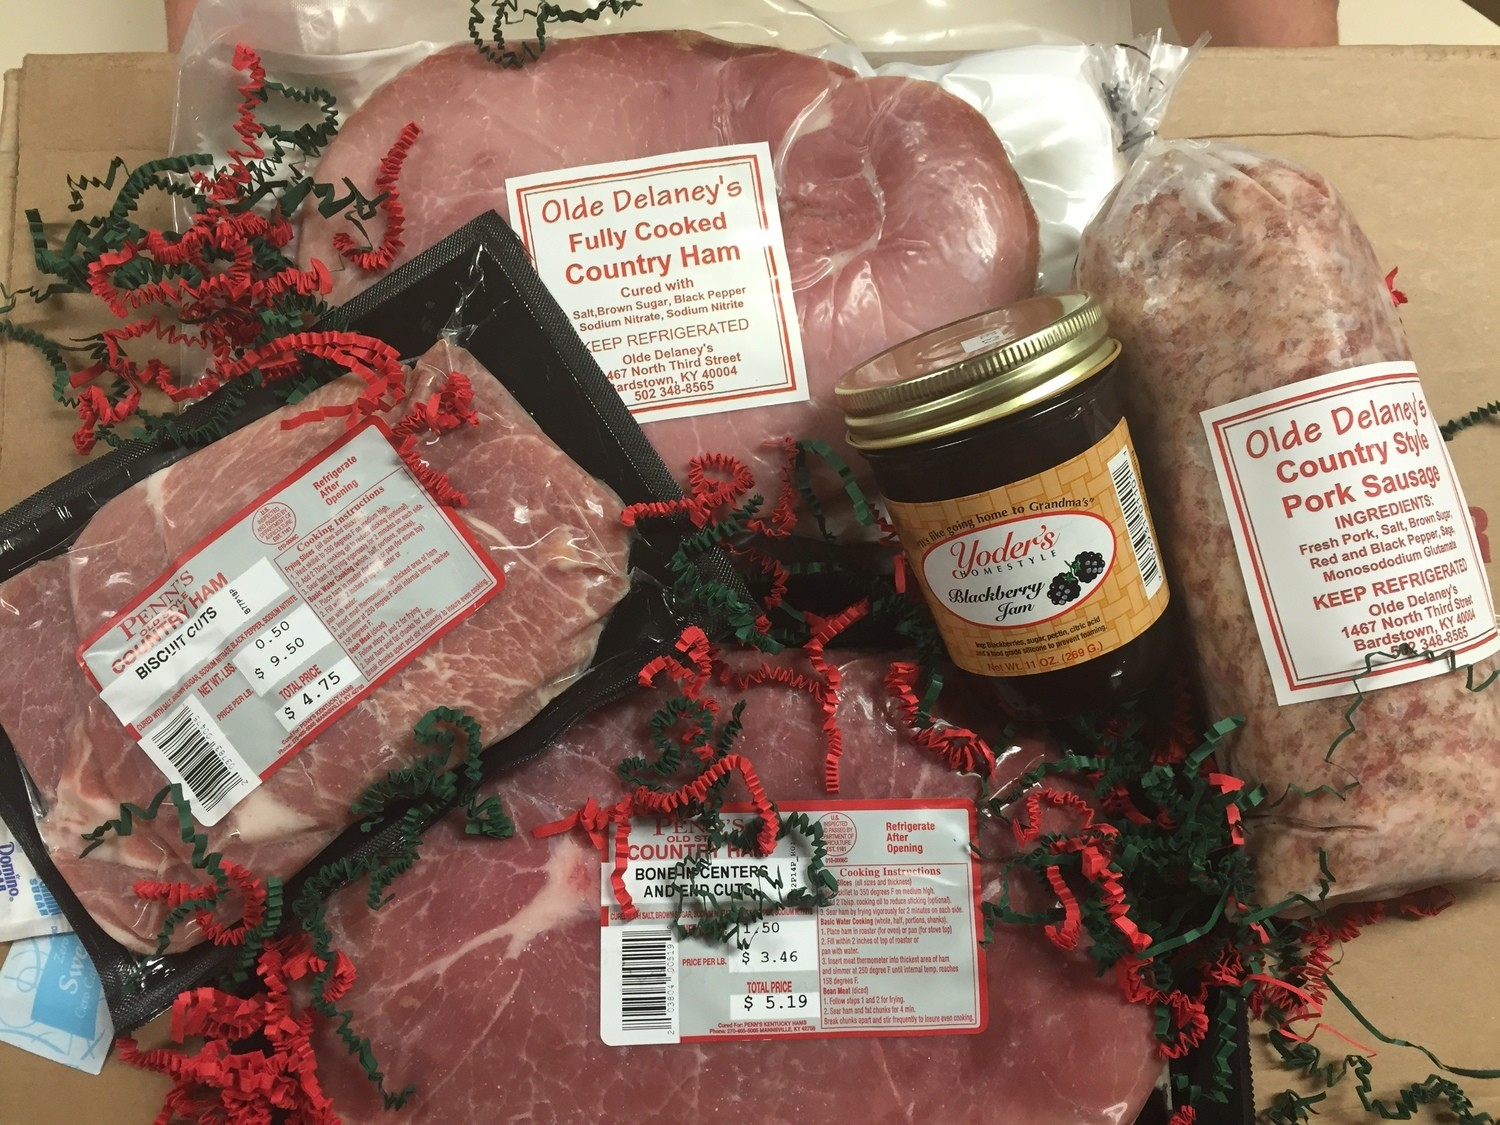 "Gift Box 1 ""Breakfast Gift Pack"" ( 1 1/2 lbs frying Ham, 1/2lb Biscuit Cut Frying Ham, 1 1/2lbs Country Sausage, 1/lb Fully cooked Country Ham, 1 Jar Blackberry Jam)"